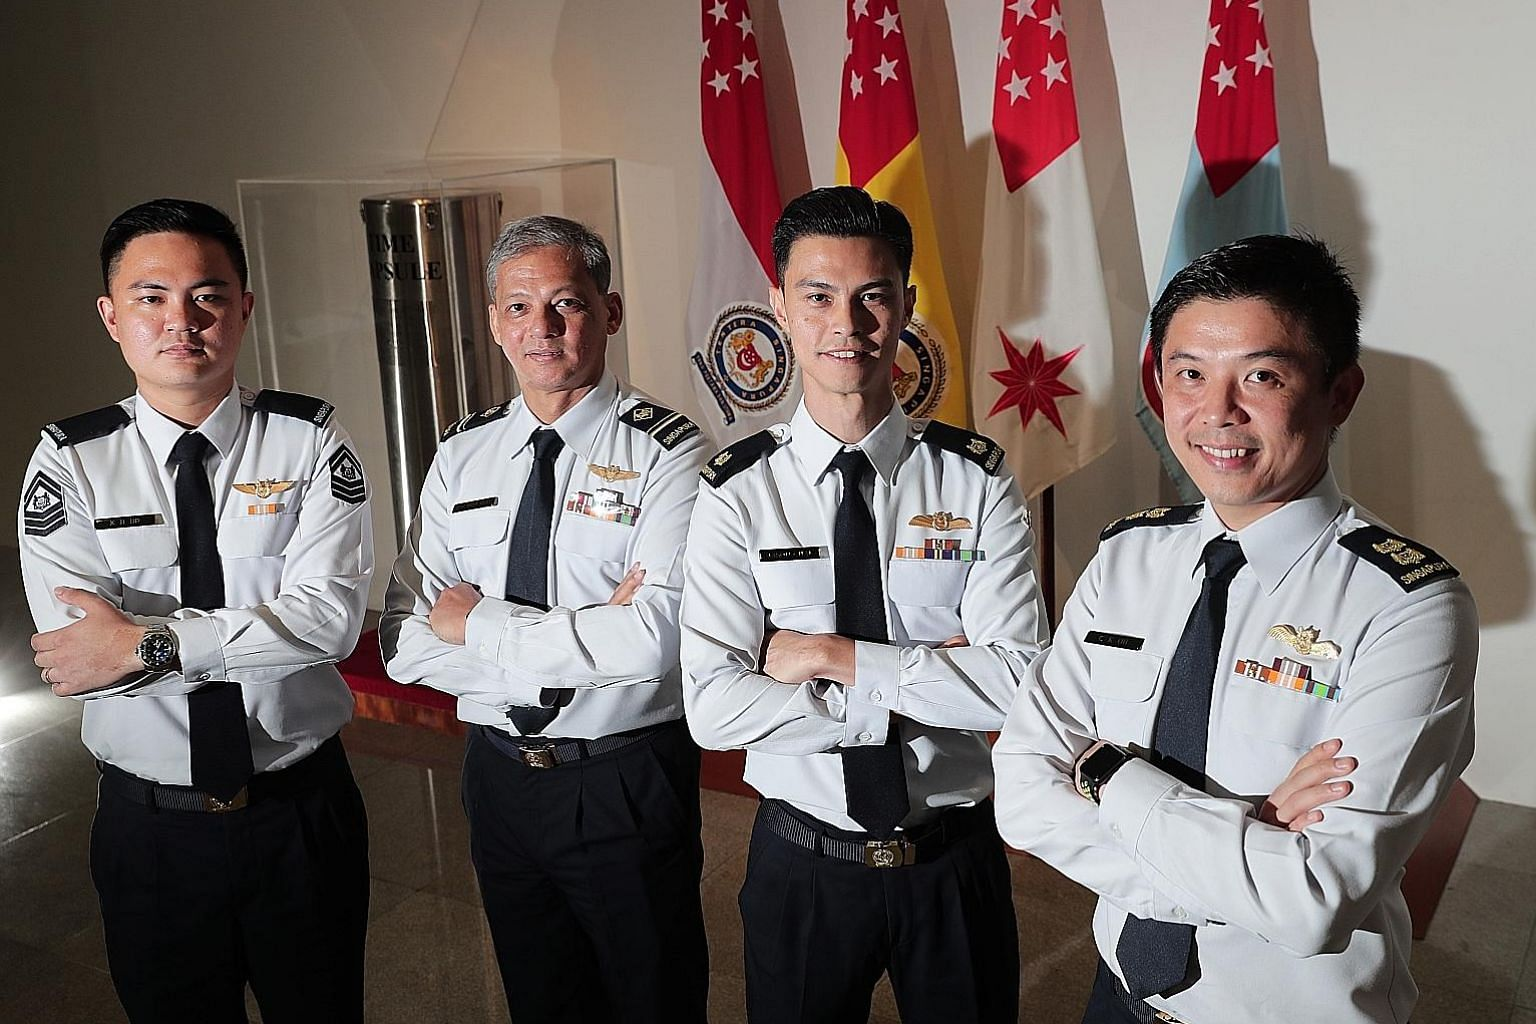 (From left) Staff Sergeant Keith Ho, Military Expert 4 Brian Rezel, Major Jason Chai and Lieutenant-Colonel Oh Chun Keong were among 95 military personnel who received Overseas Service Medals from Defence Minister Ng Eng Hen yesterday. Dr Ng said the